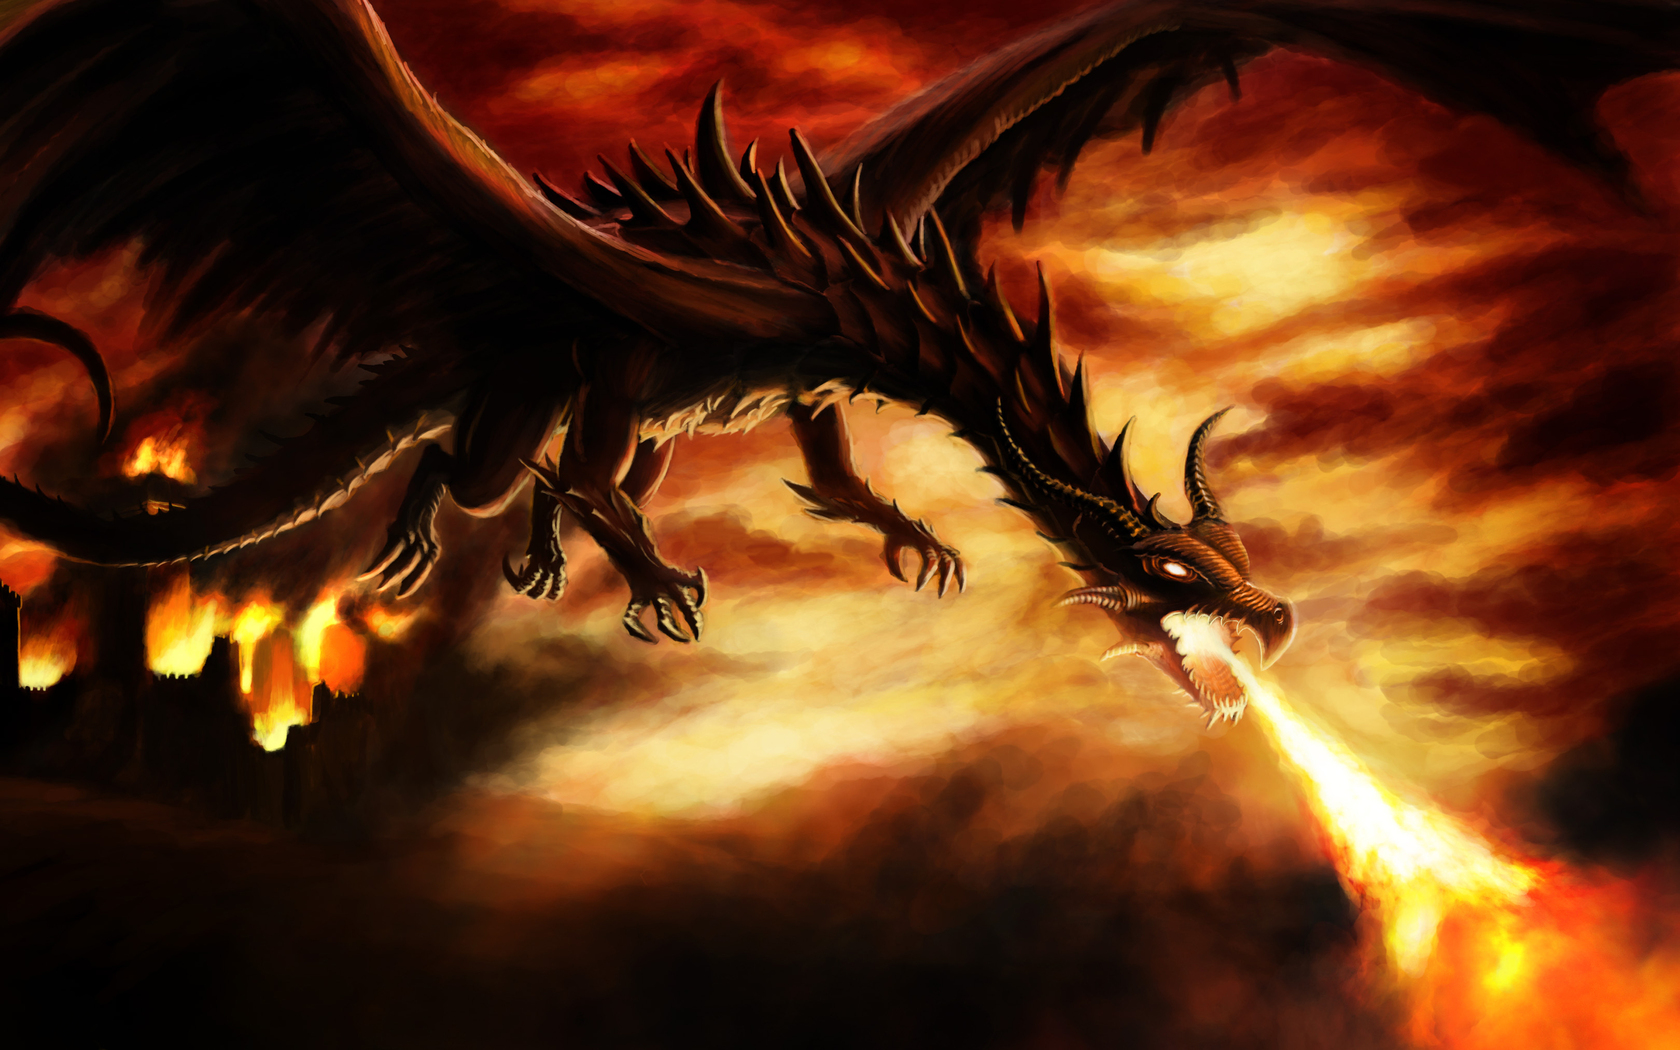 Dragon Attack 3d art black dragon fire 1680x1050